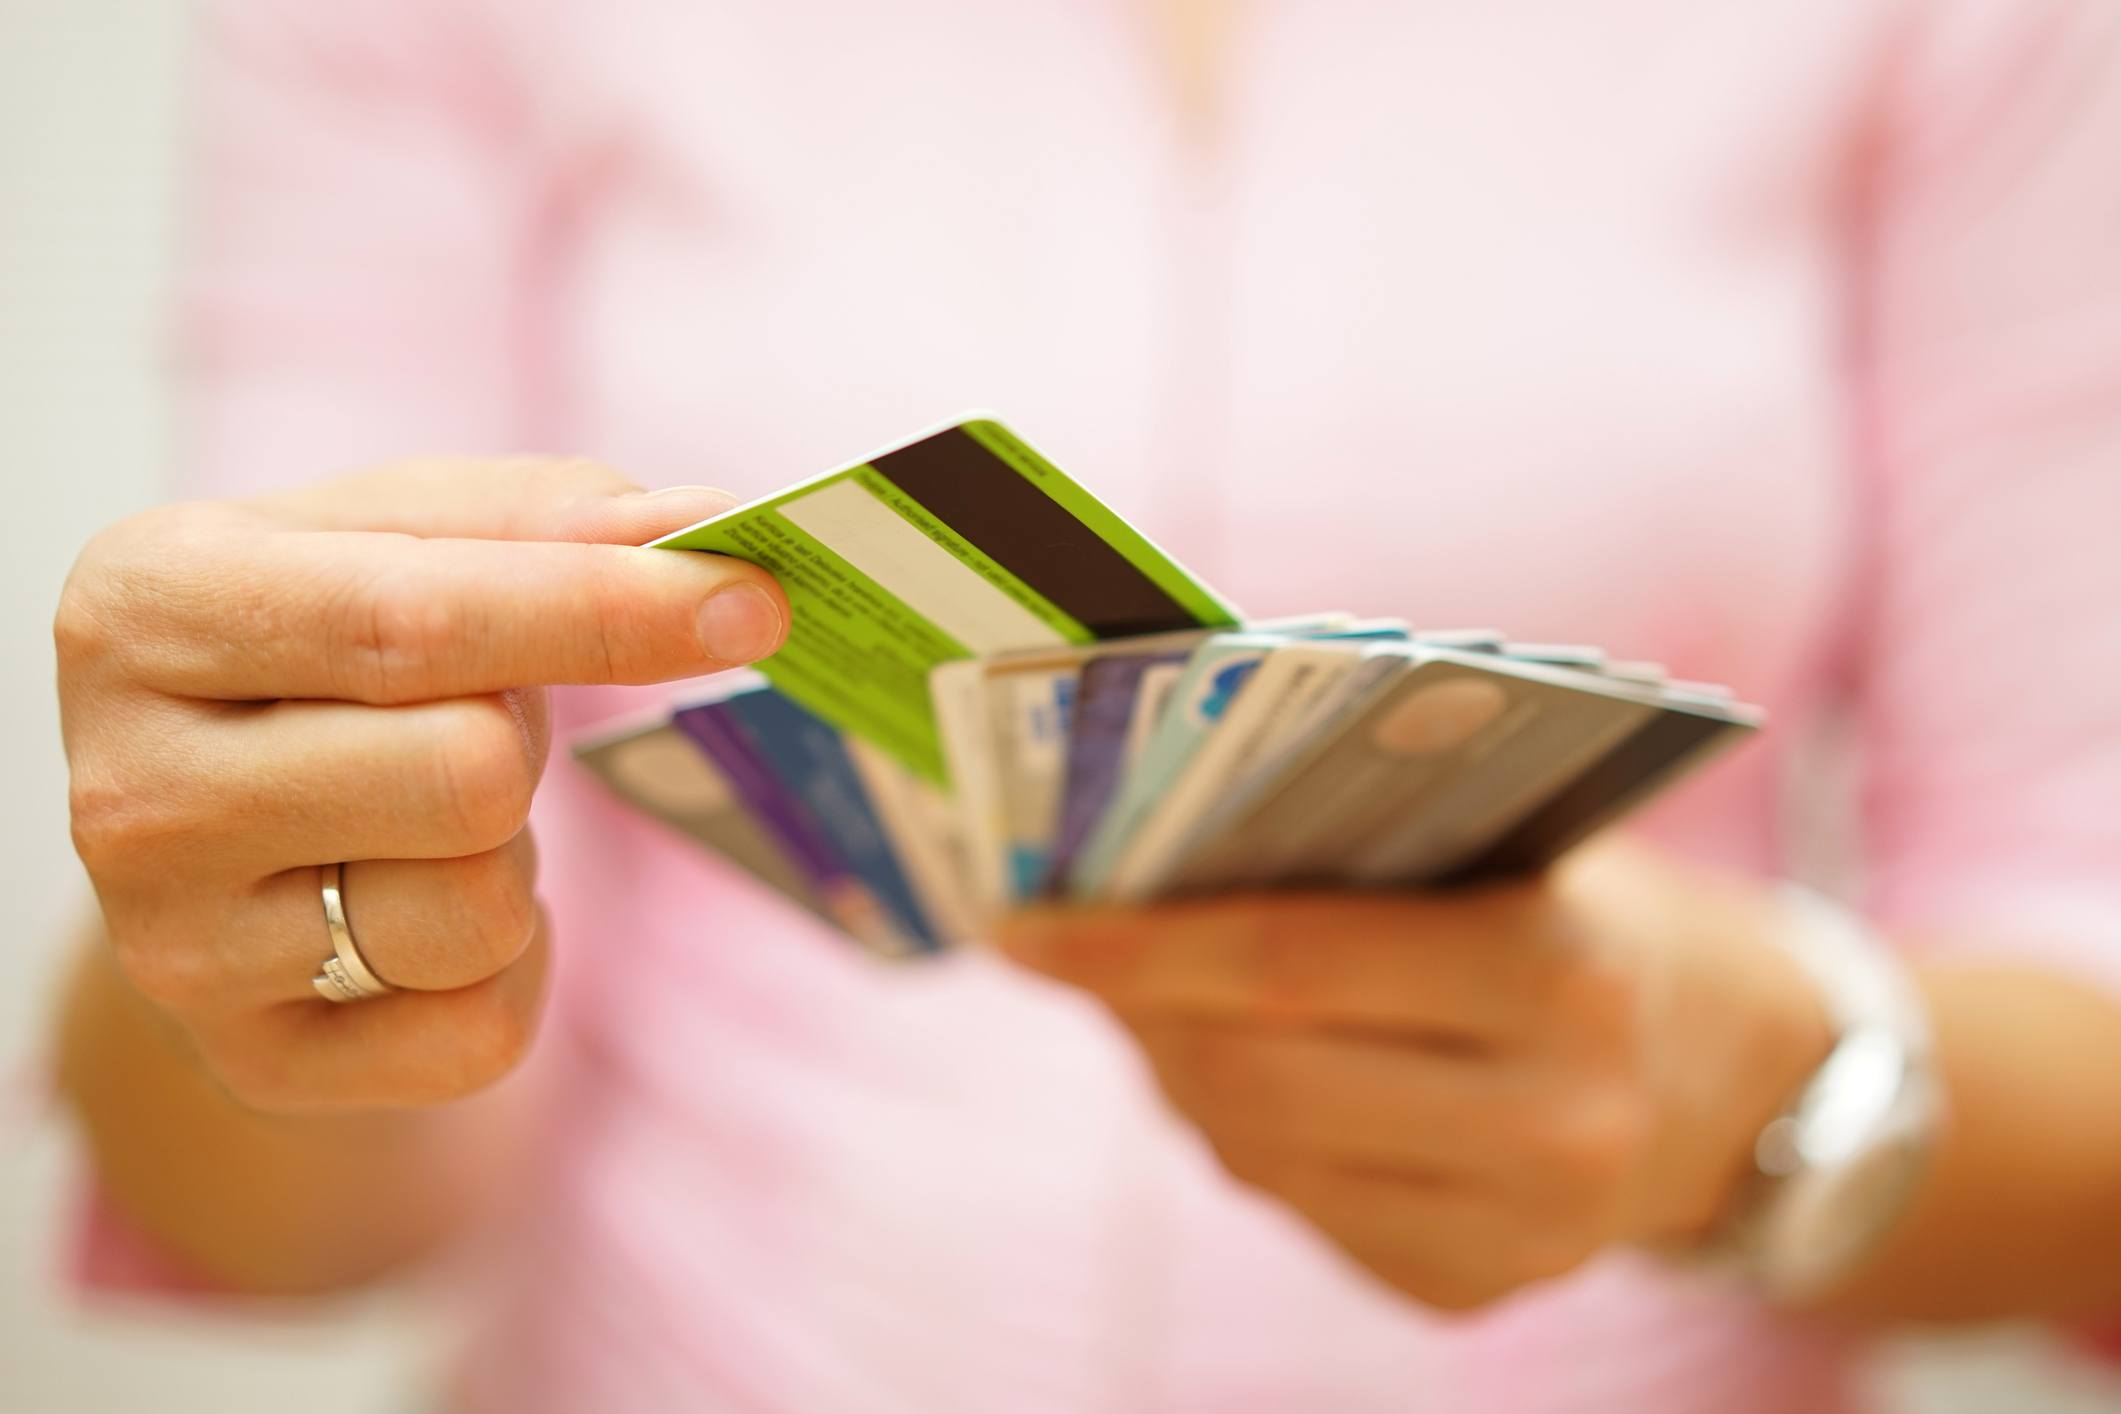 Woman chooses one credit card from many in her hand